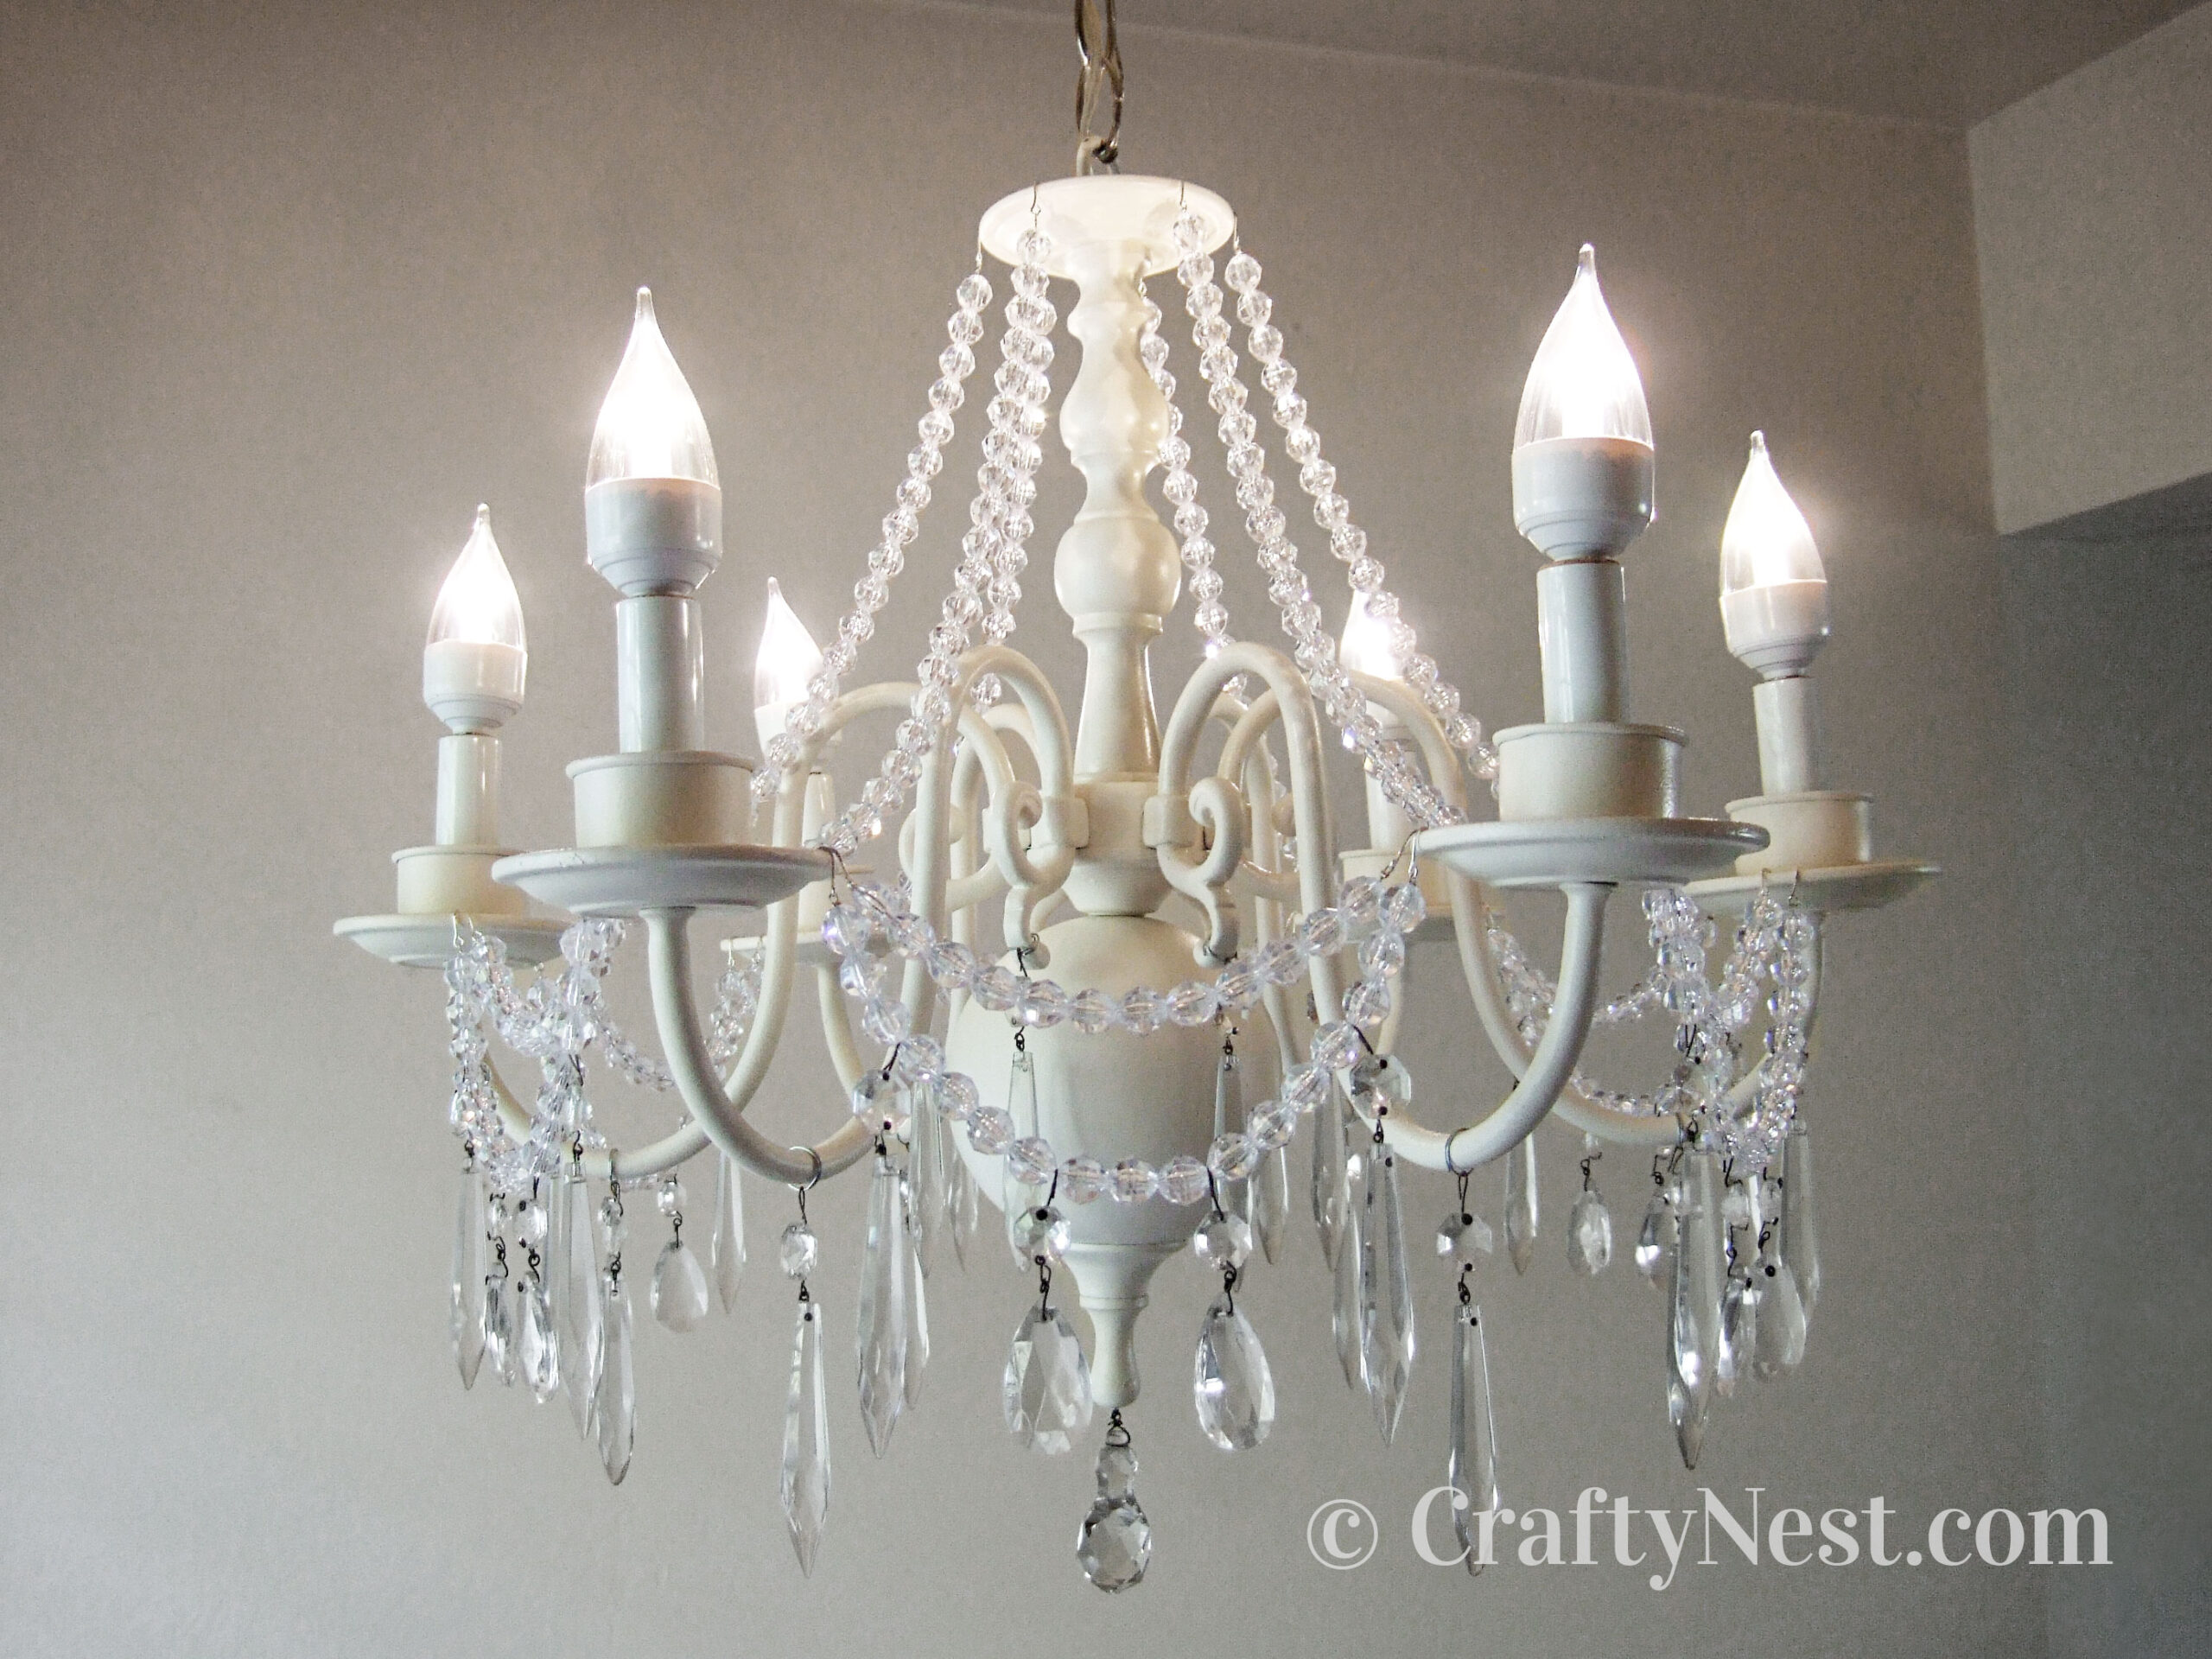 White chandelier with crystals, photo